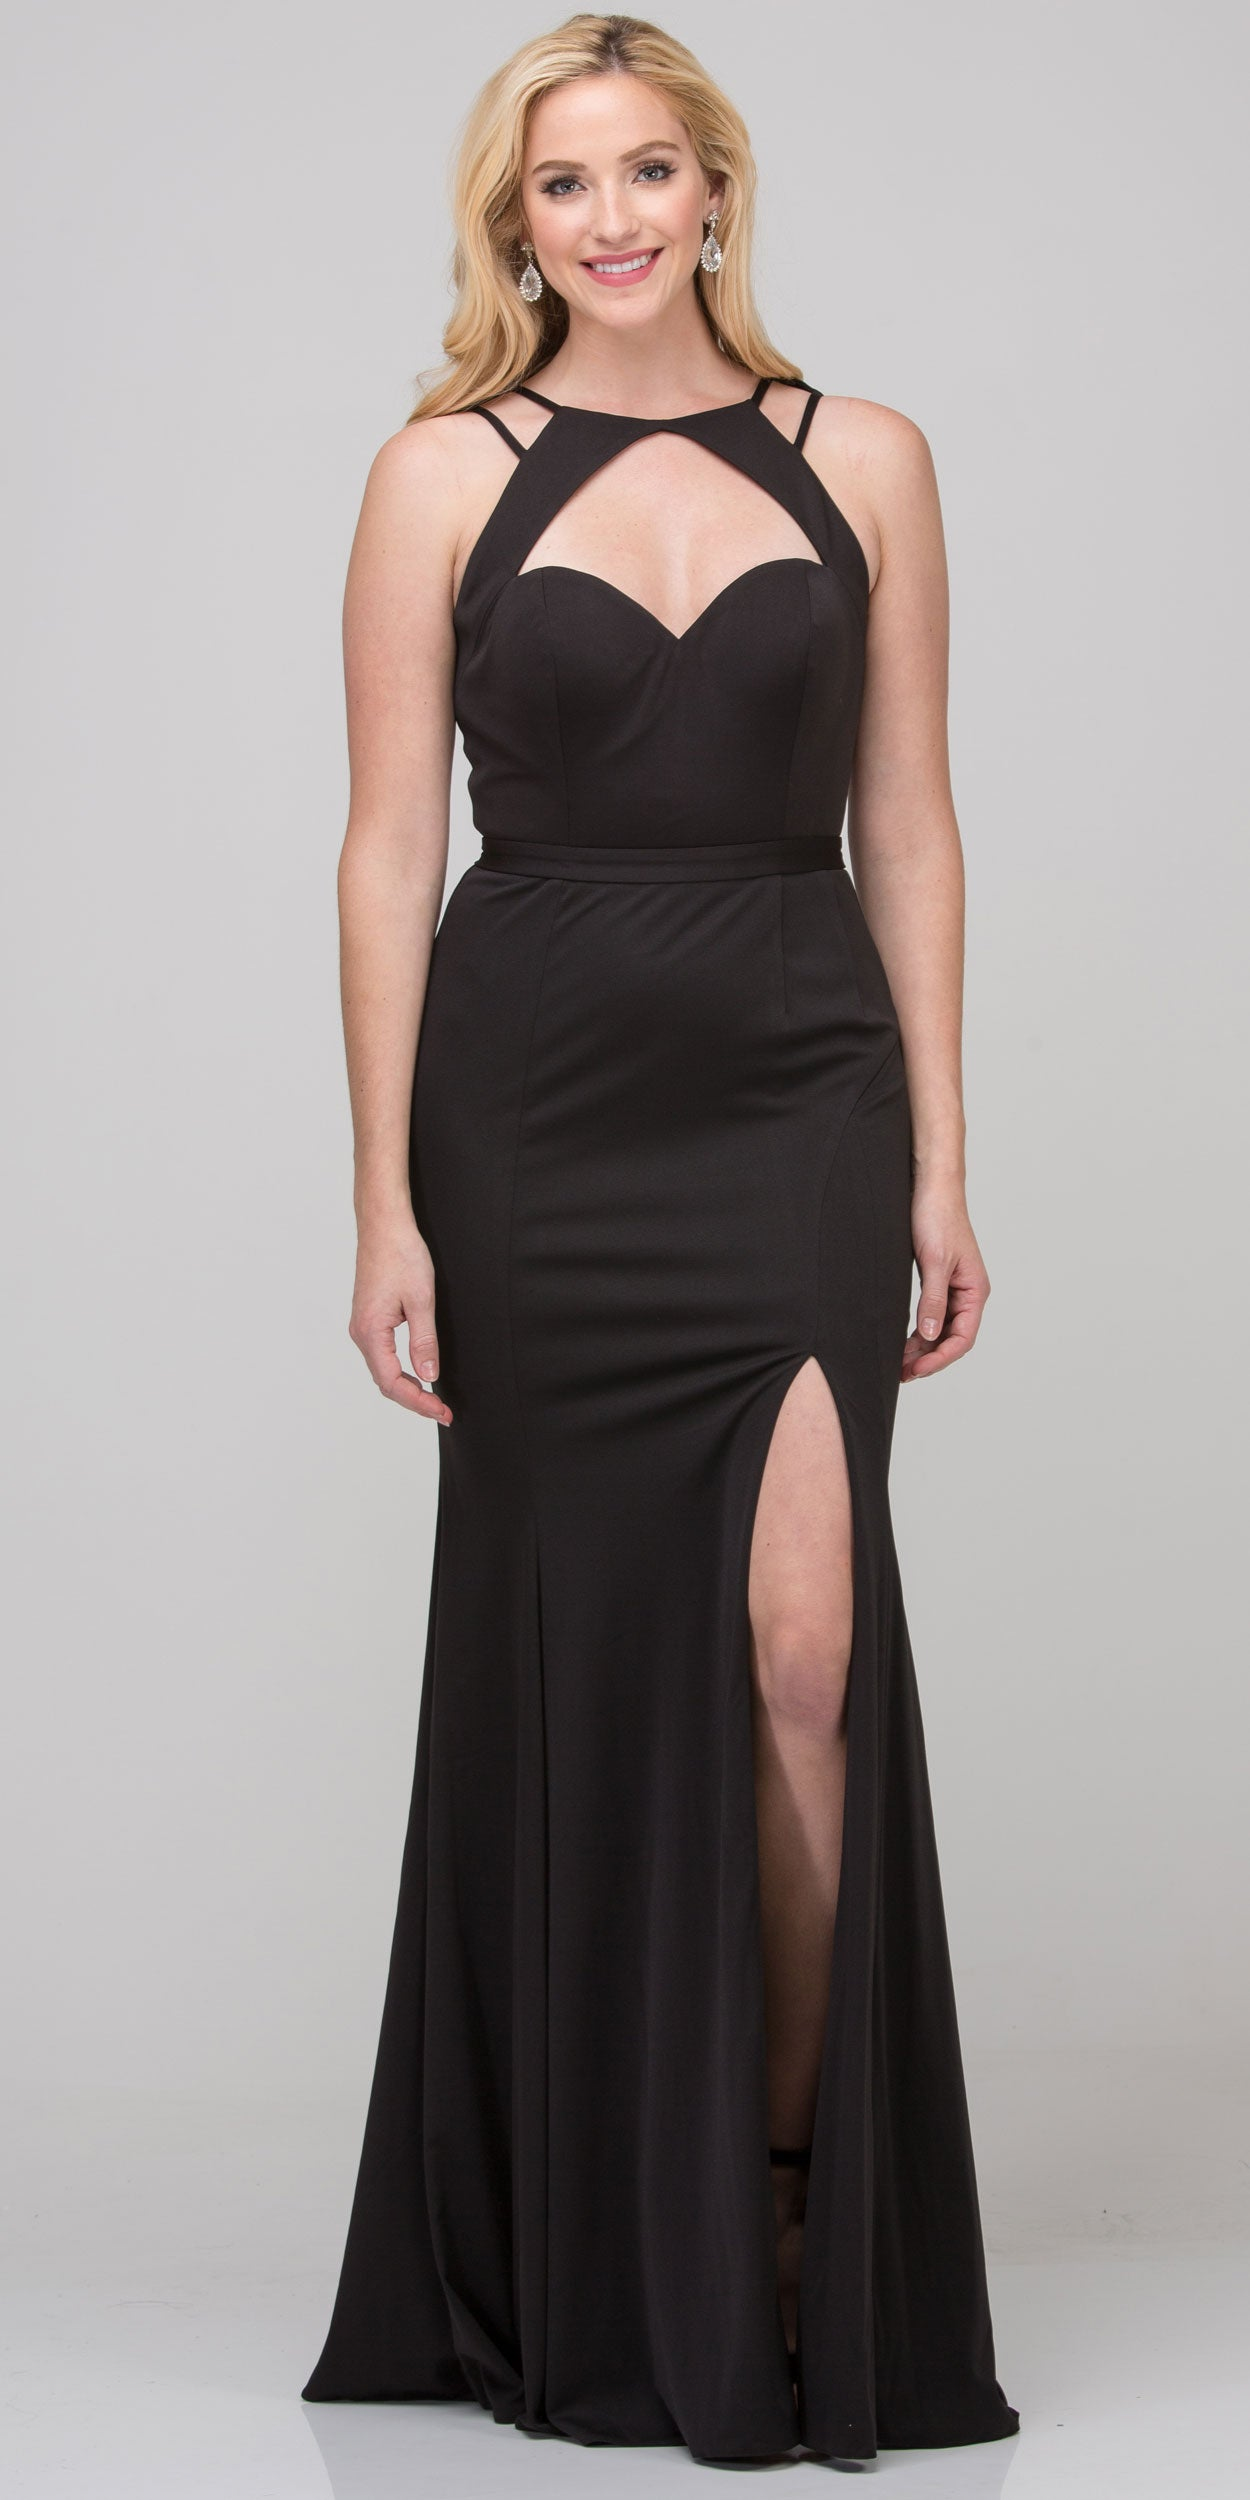 Image of Cutout Sweetheart Neckline Long Fitted Formal Prom Dress in Black